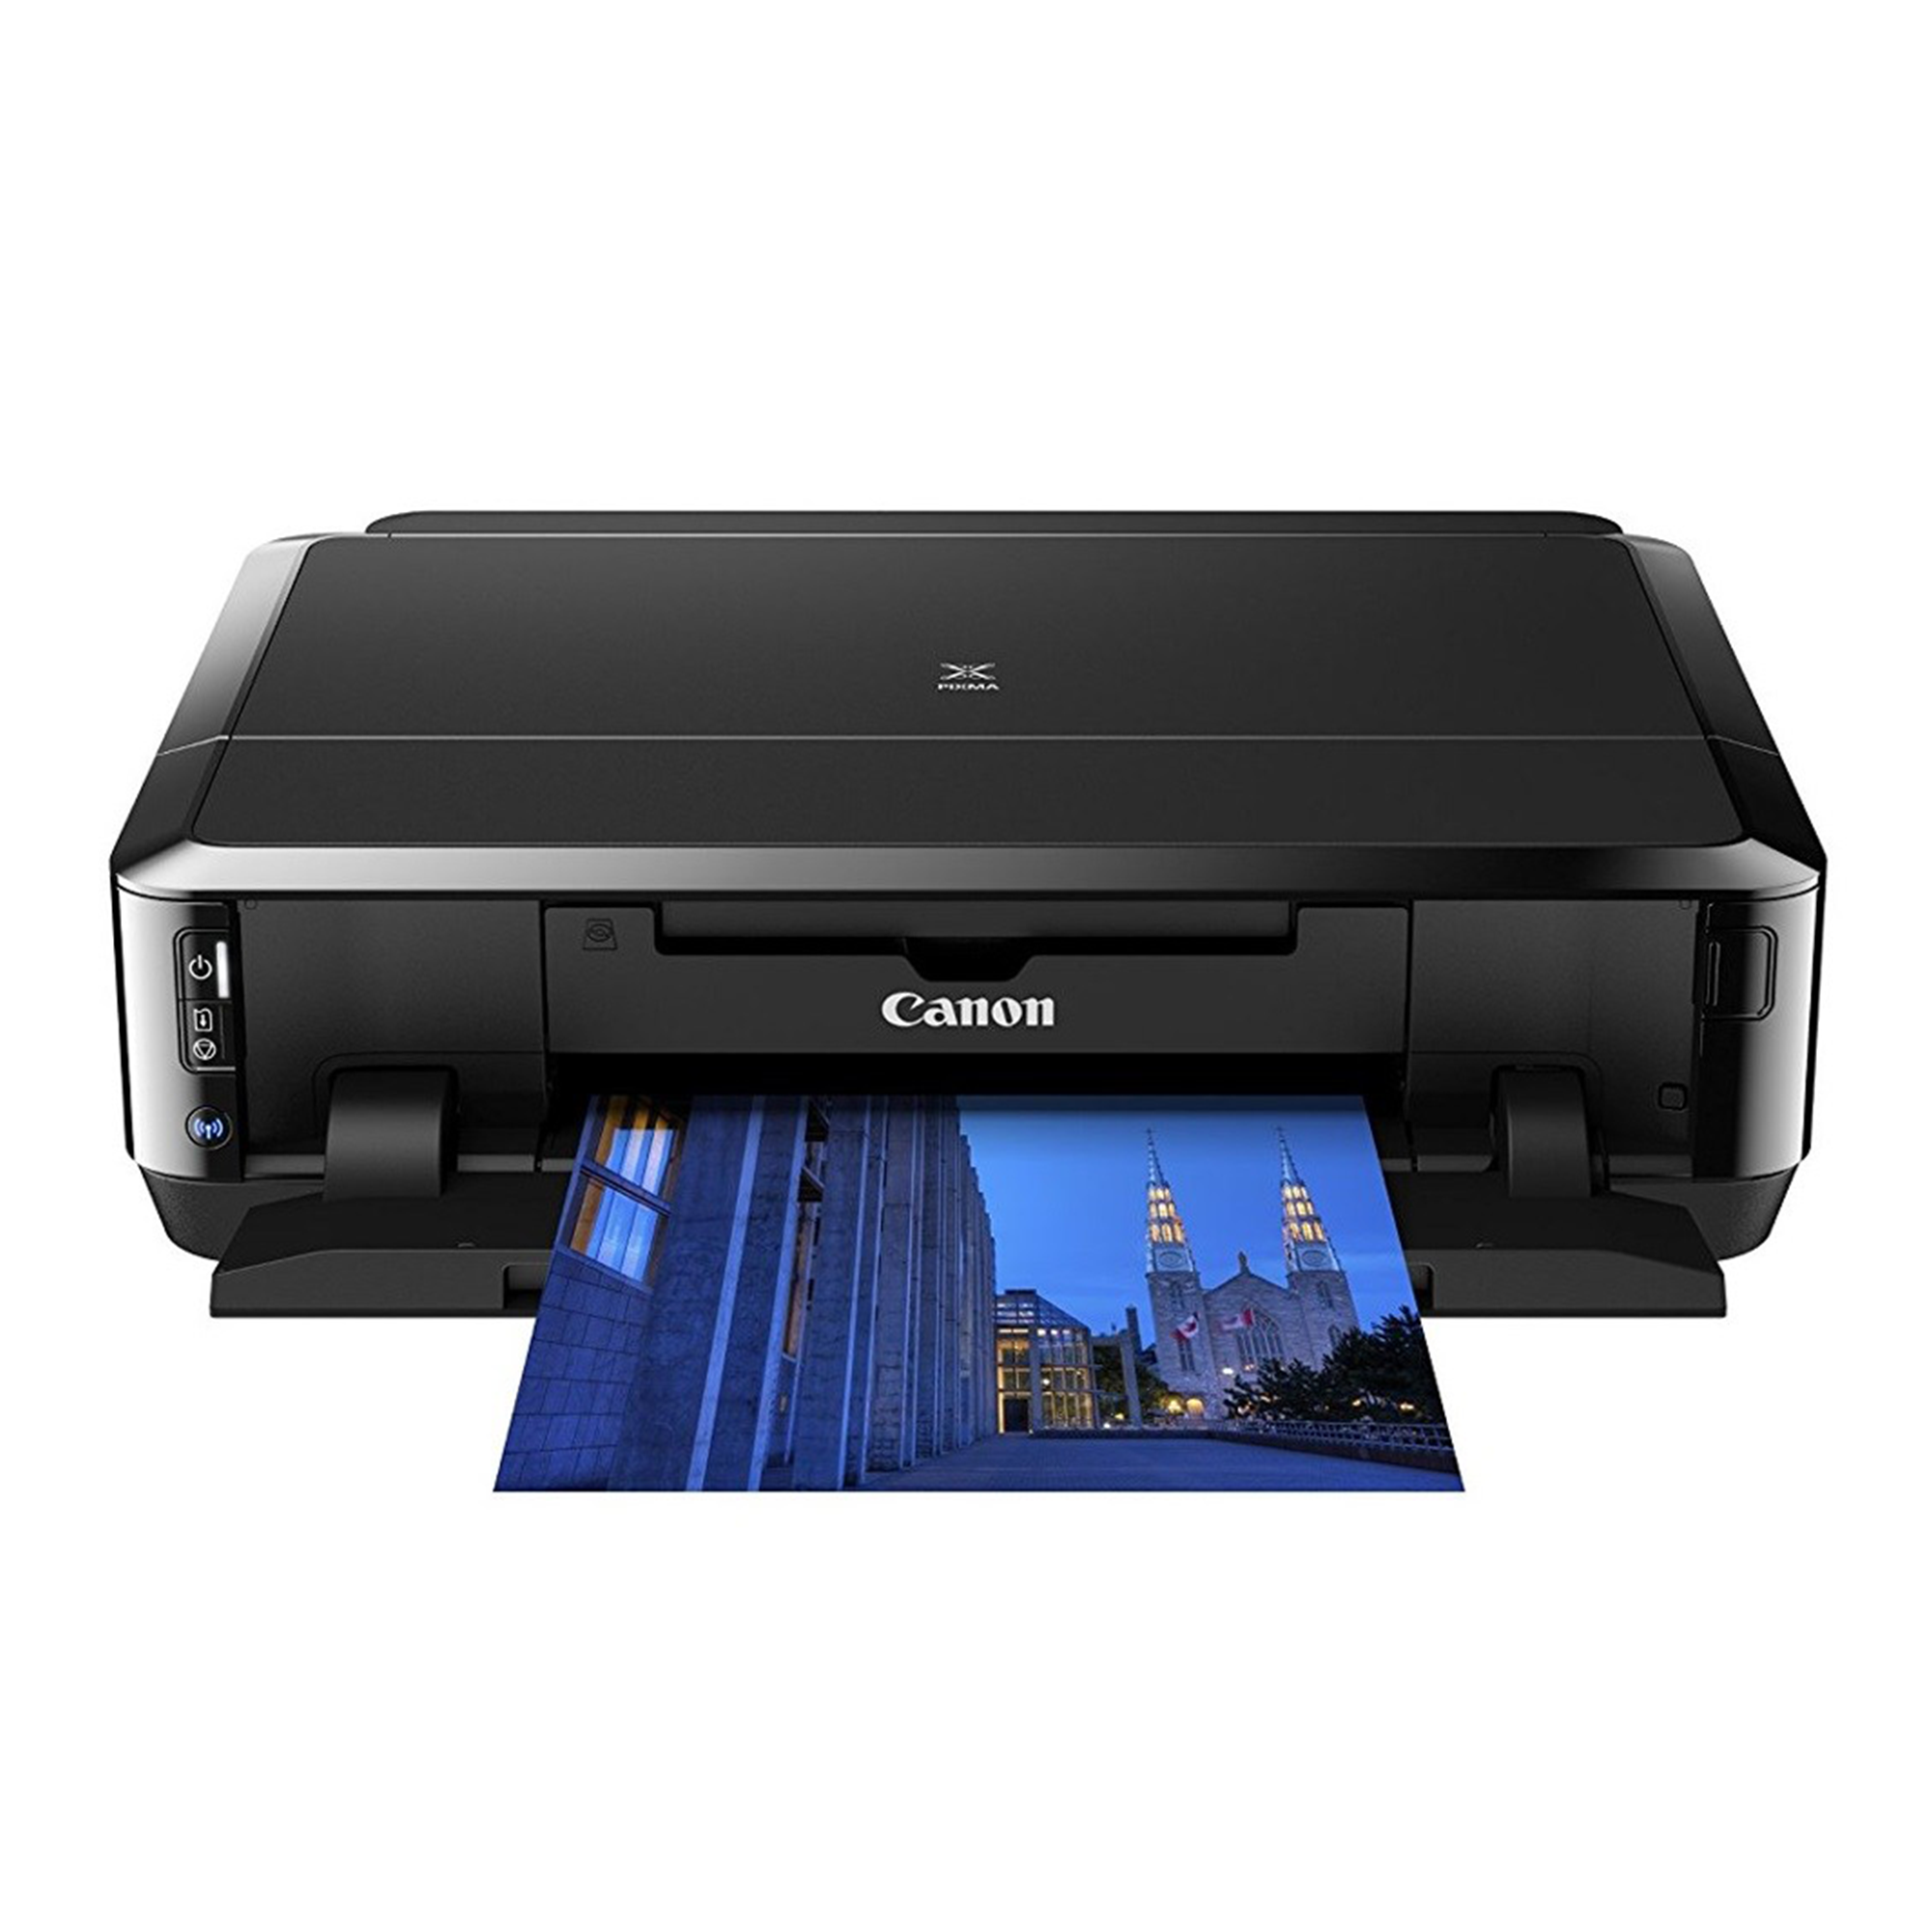 CANON PIXMA  IP7240 Printer +  A4 Kodak Photo Printer FREE GIFT